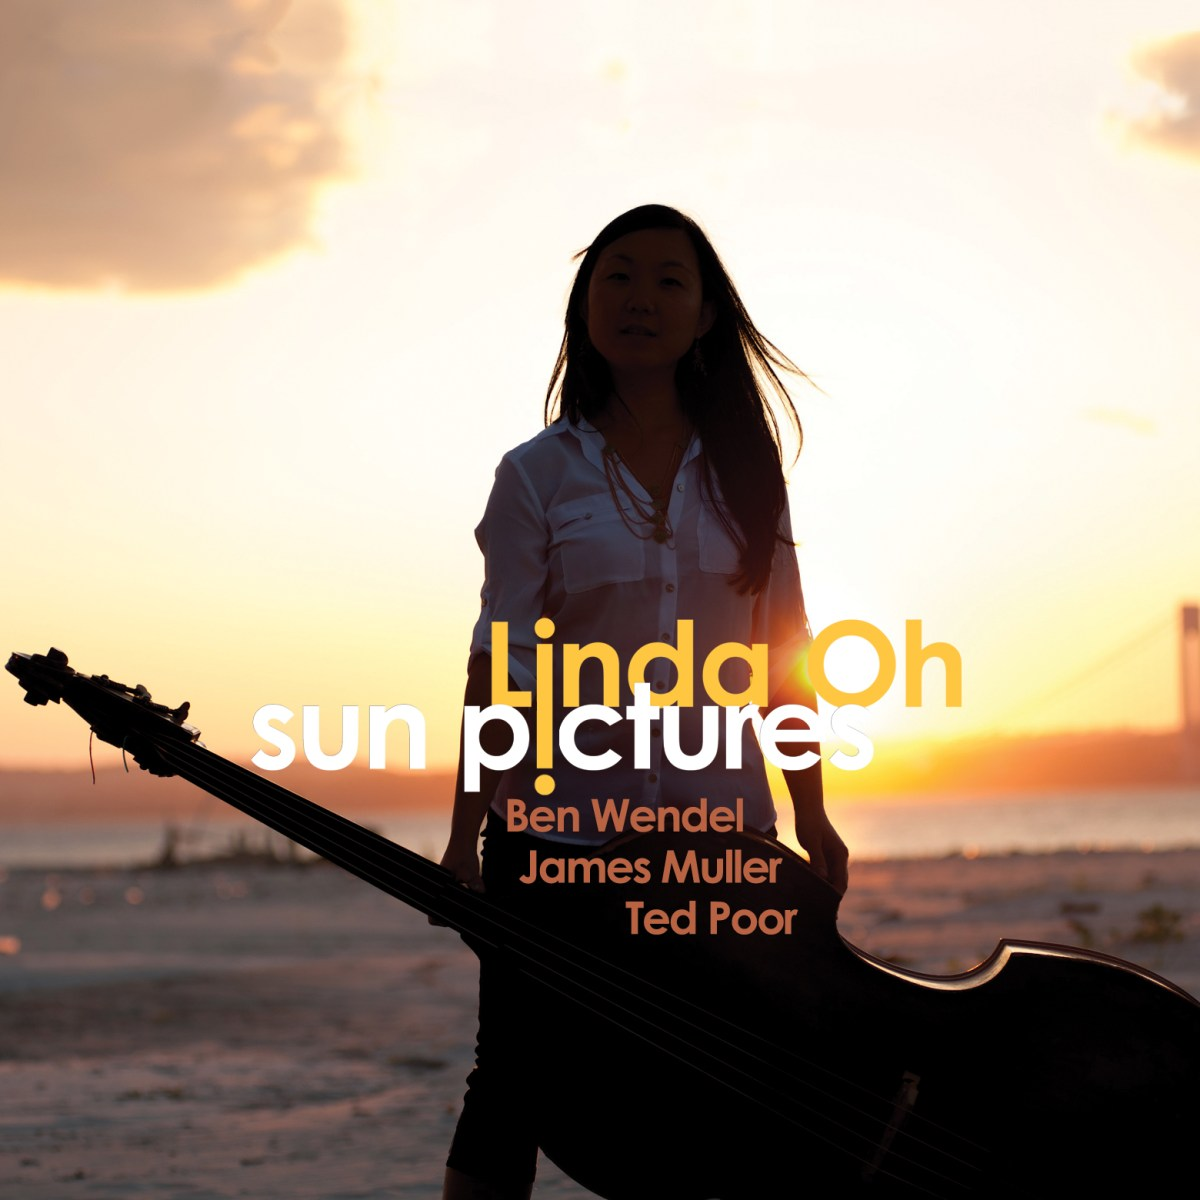 Album review: Sun Pictures (Linda Oh) by John Shand